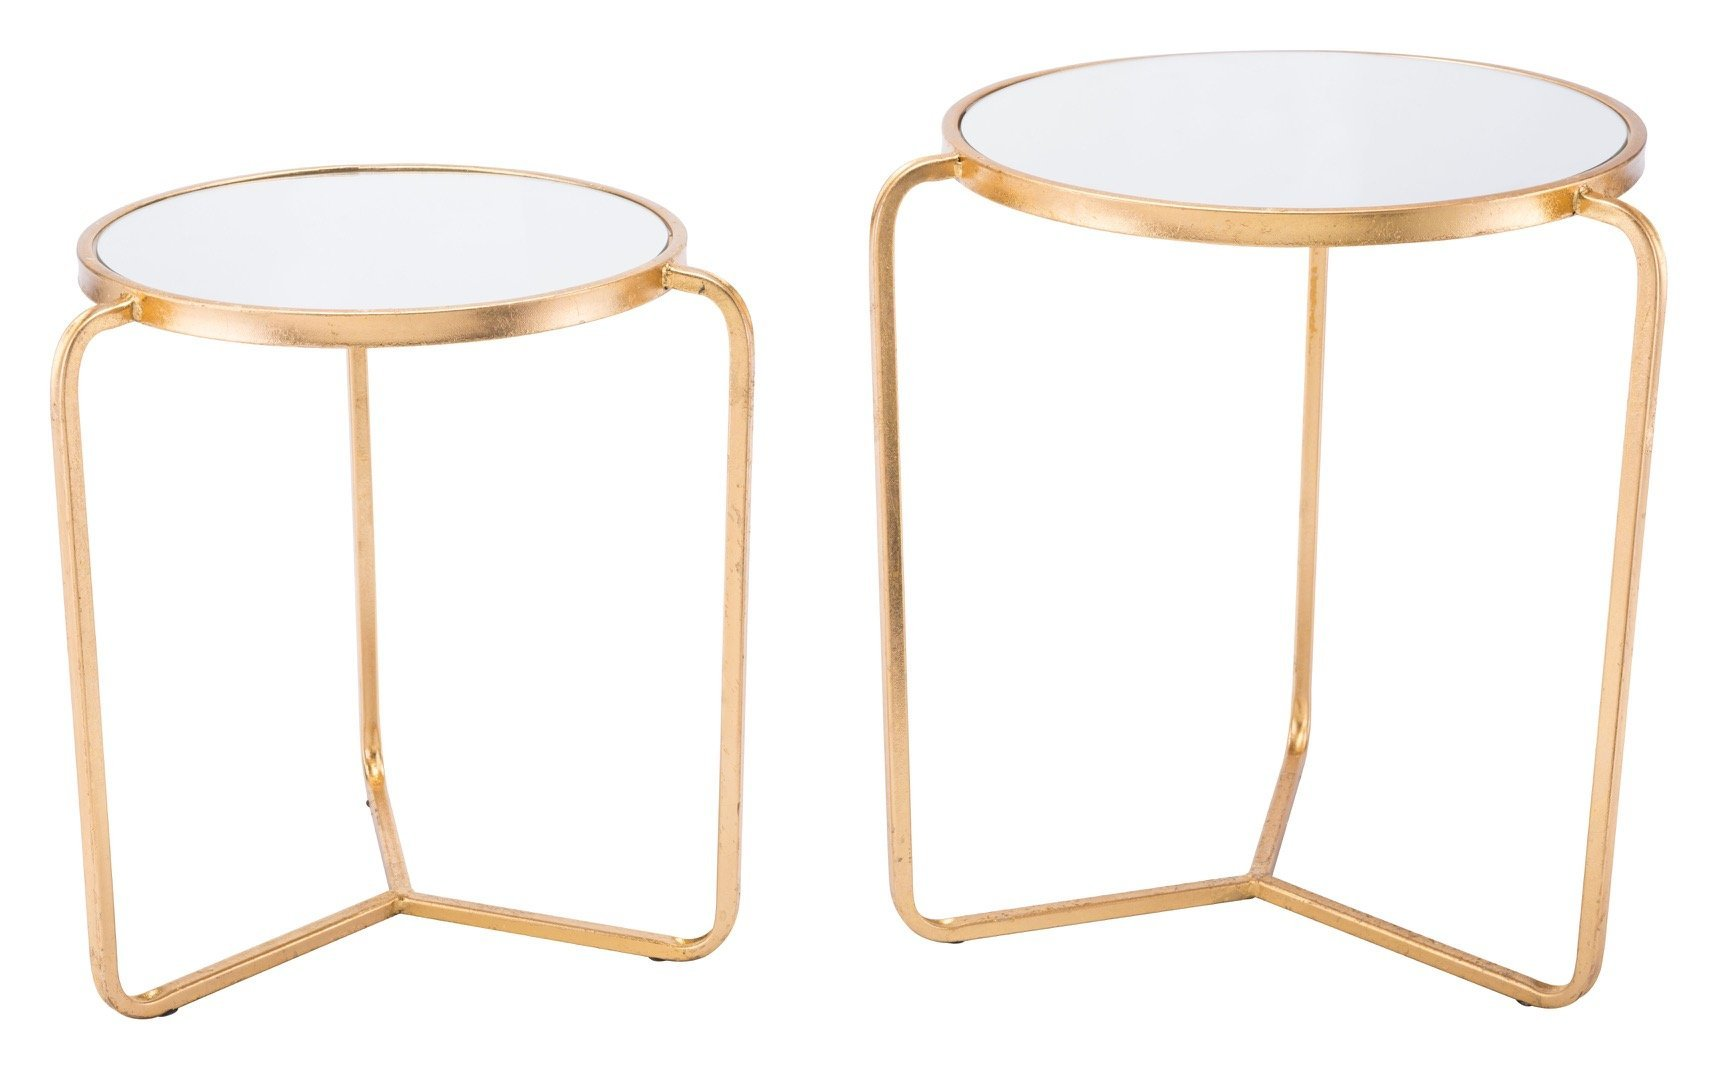 set tripod accent tables gold with mirrored top side alan decor table and mirror round outdoor cocktail farm style dining target chalk paint small storage chest pier one imports